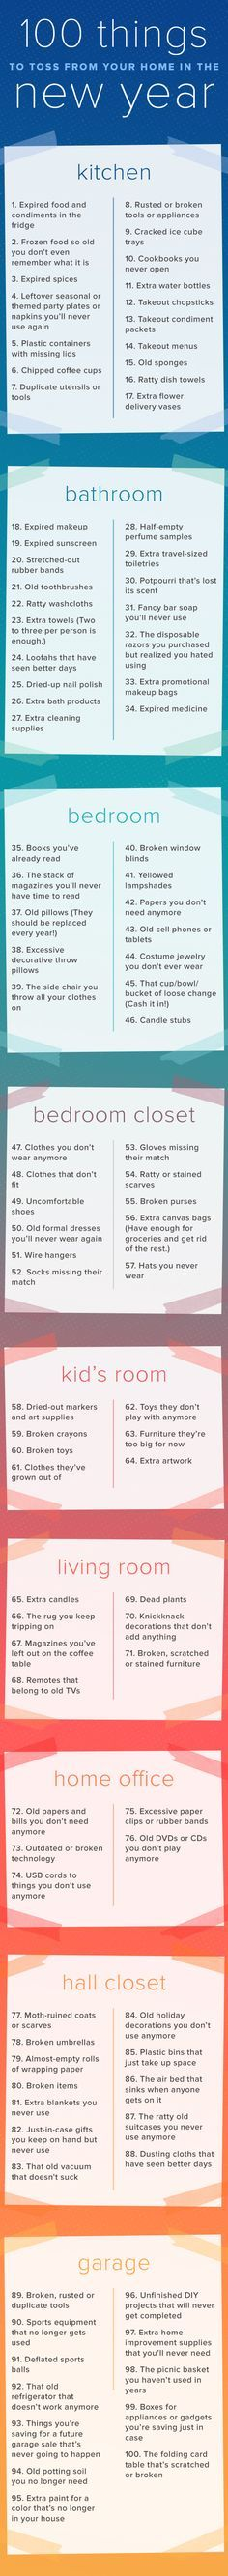 100 things to toss from your home for the new year